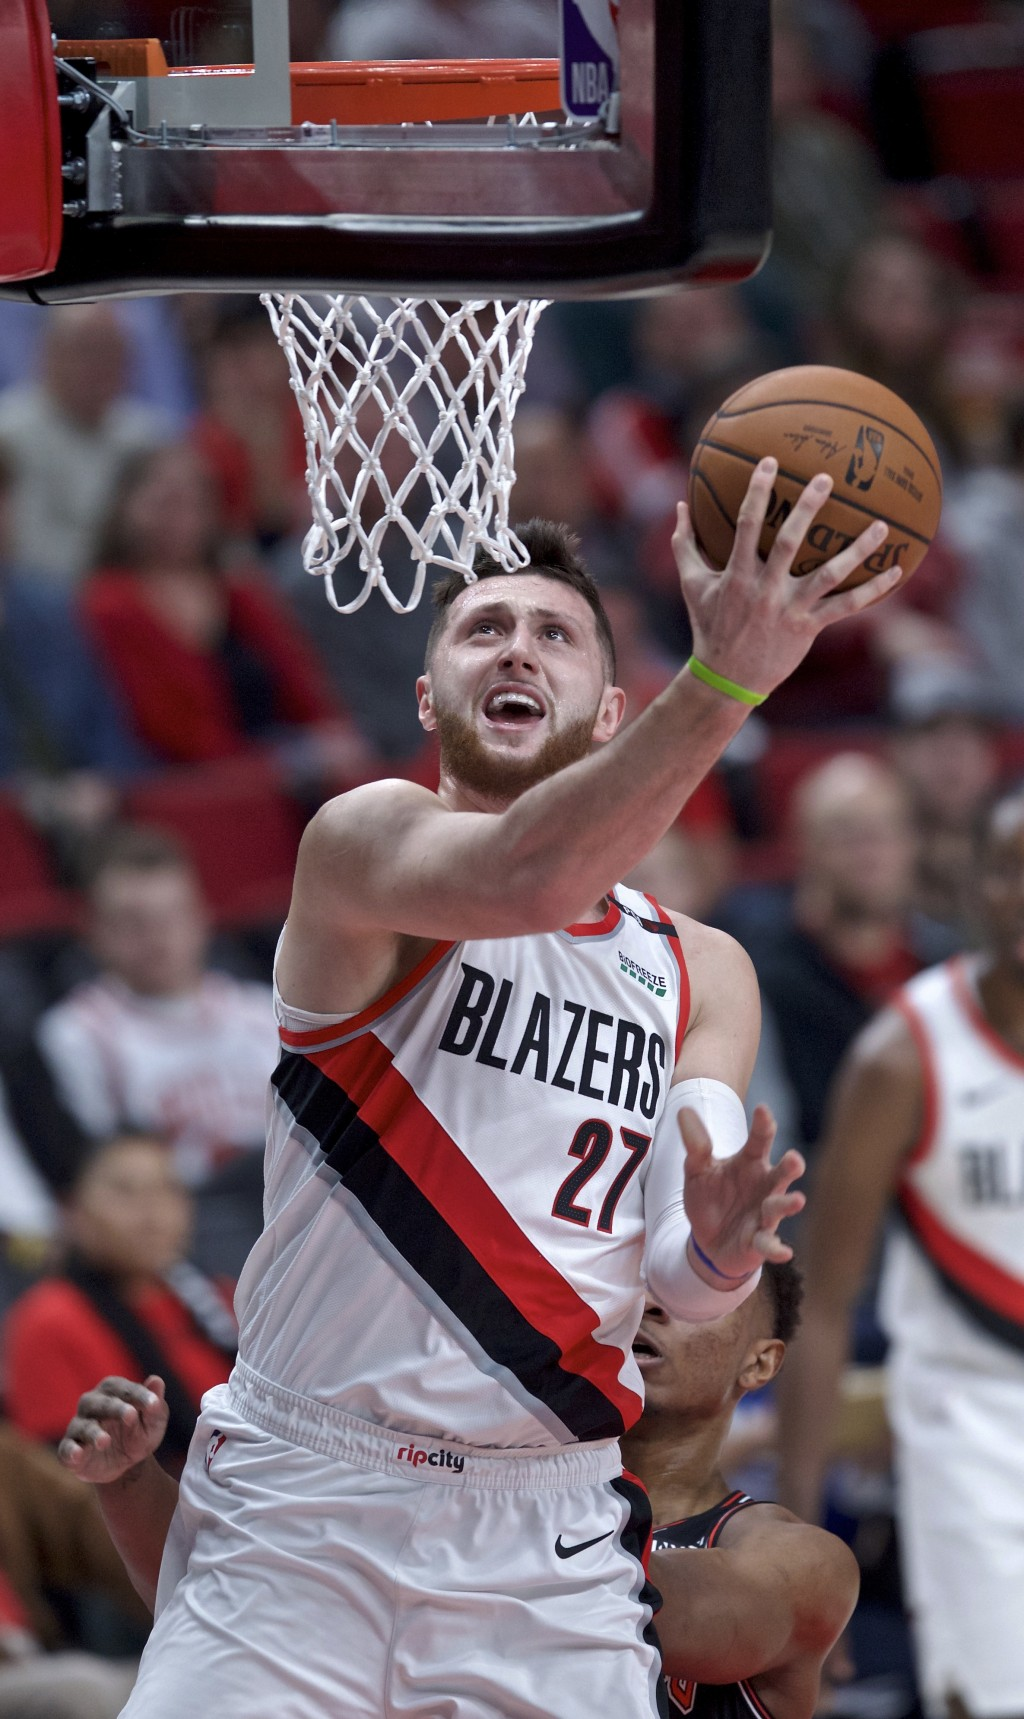 Portland Trail Blazers center Jusuf Nurkic scores during the first half of the team's NBA basketball game against the Chicago Bulls in Portland, Ore.,